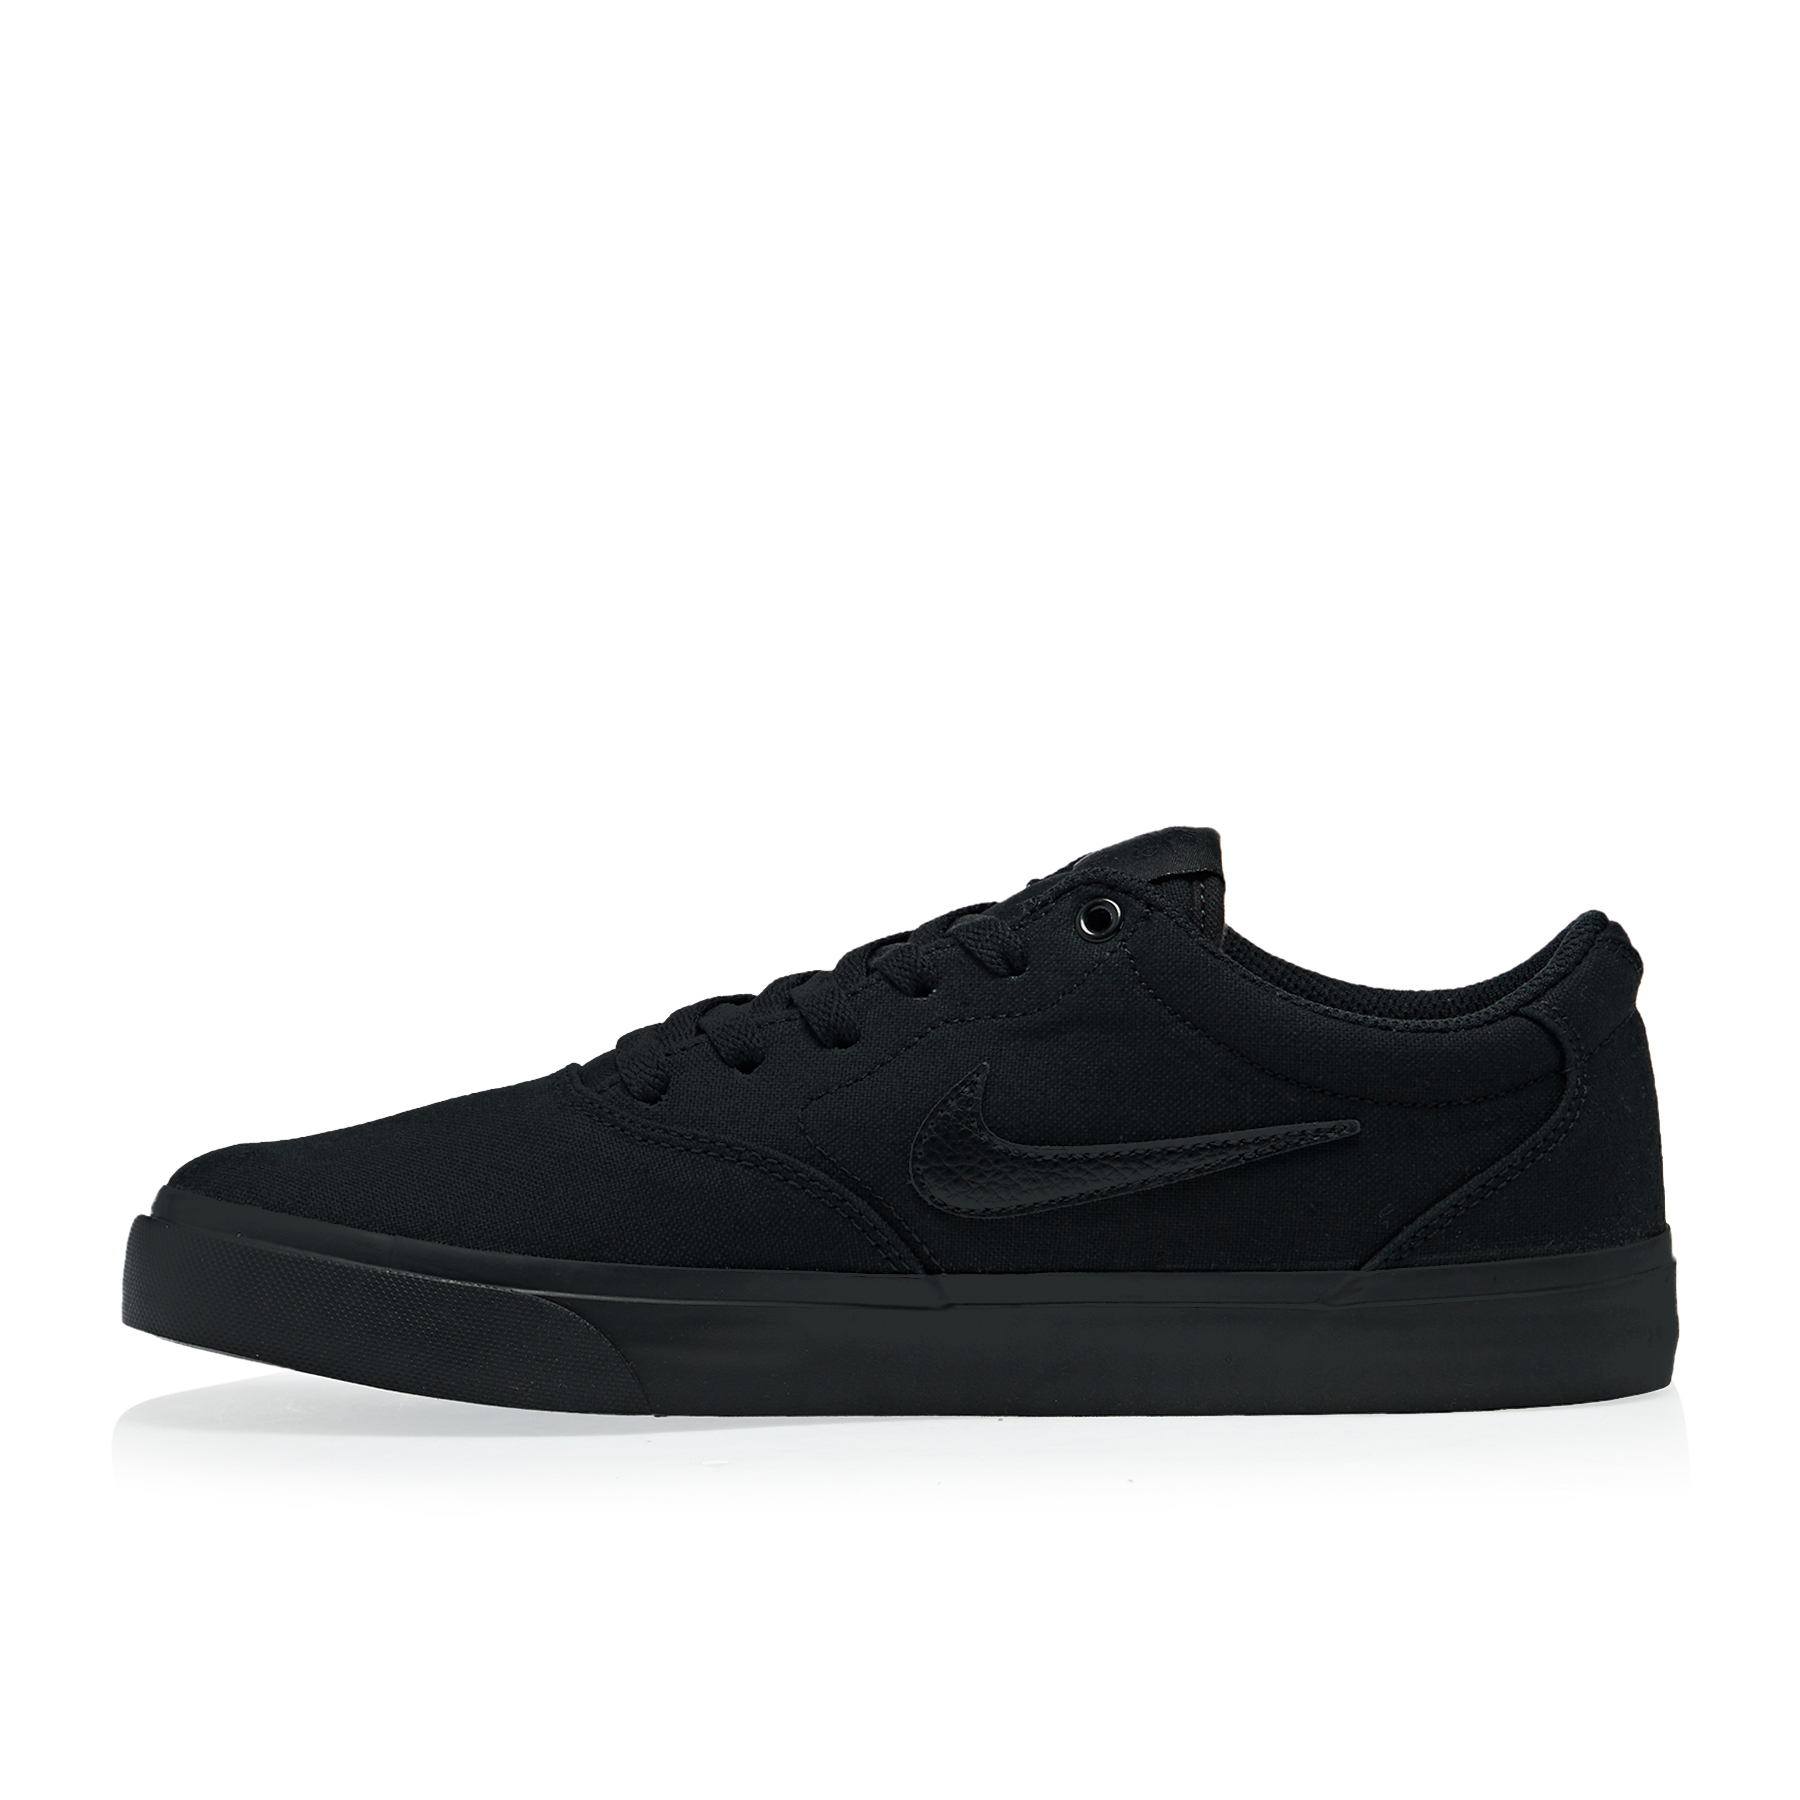 Nike SB Charge Solarsoft Herren Skateboarding Shoe blackblackblack CD6279 001